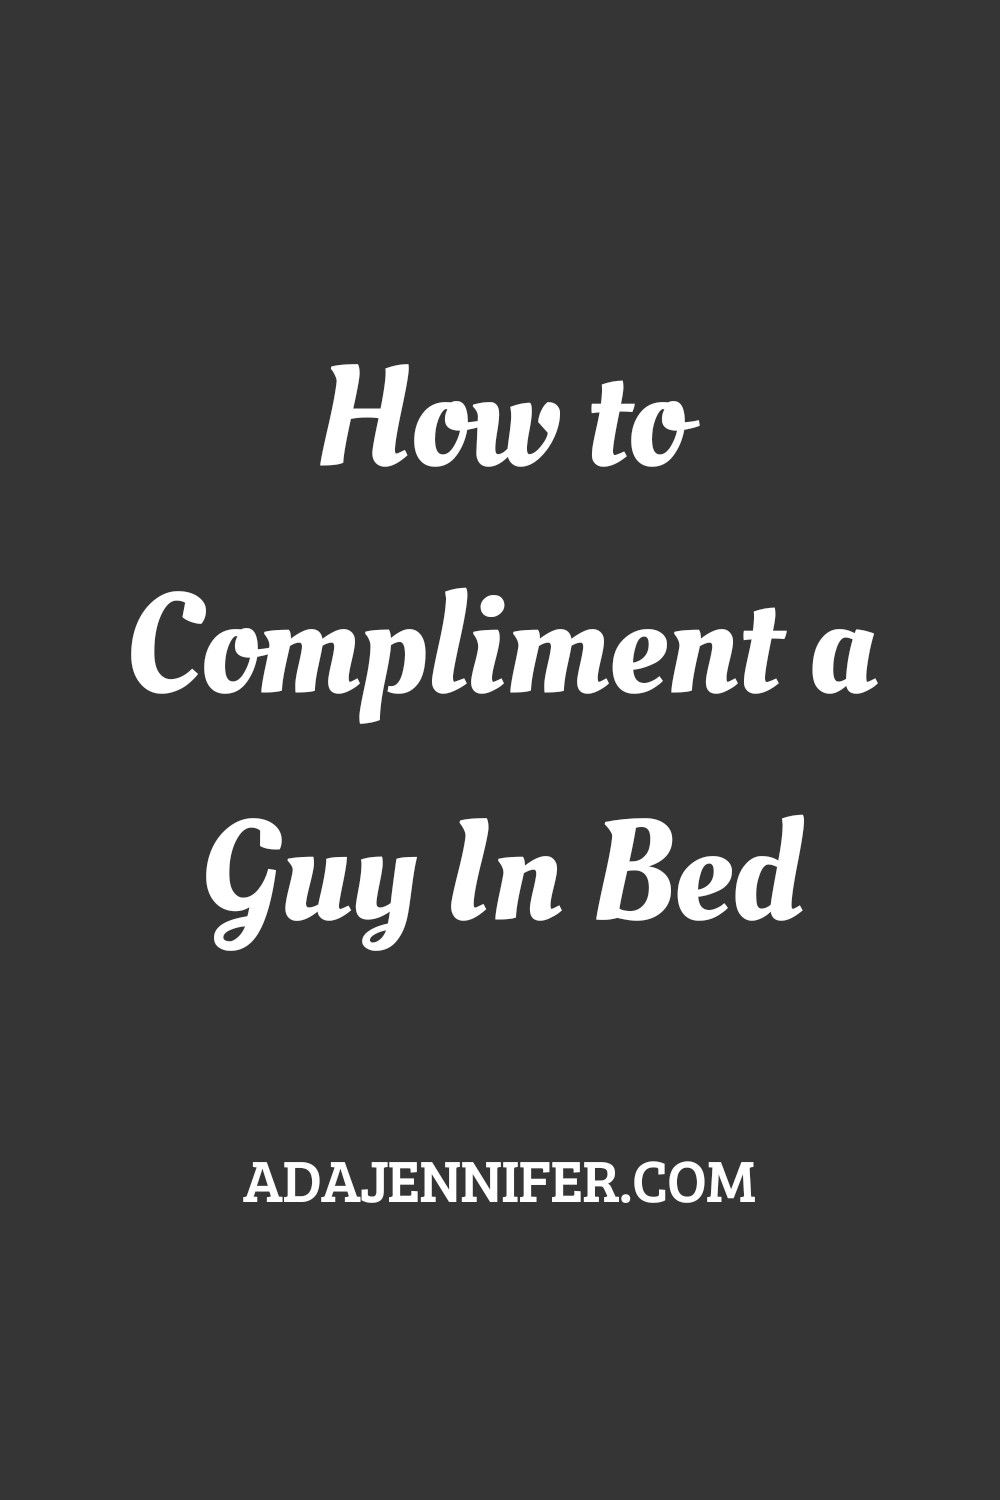 How To Compliment A Guy In Bed Compliment For Guys Funny Compliments Compliments